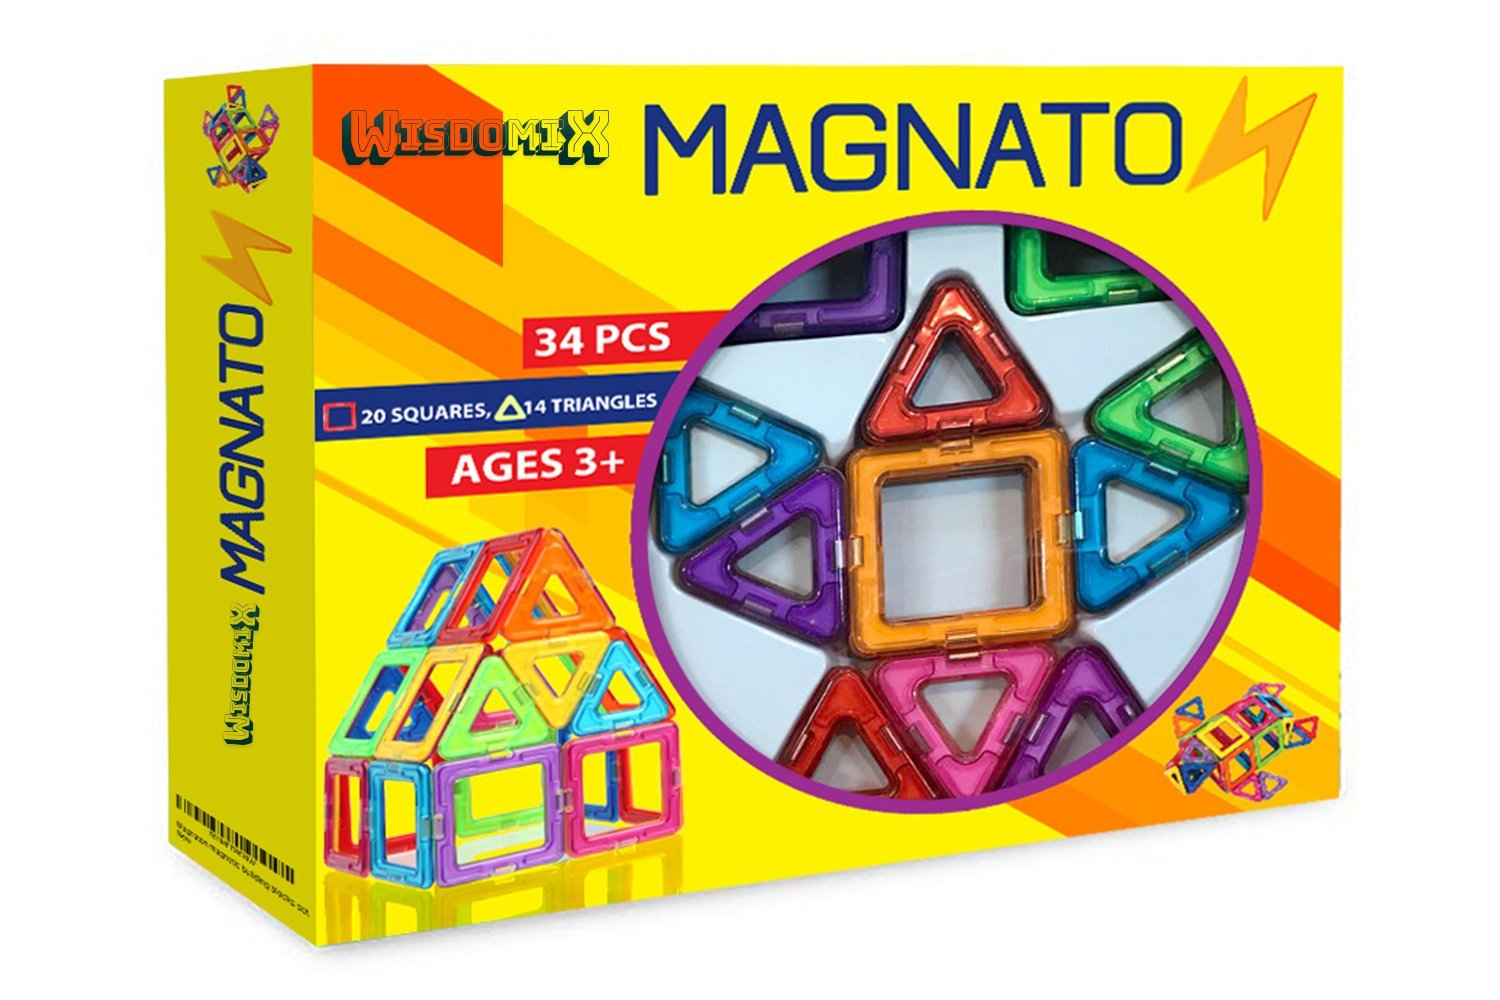 WISDOMIX MAGNATON Magnetic Building Blocks Magnet Tiles Set Kids Toys for Girls and Boys Educational and  sc 1 st  Amazon.com & 2 Year Old Boy Gift Ideas: Amazon.com